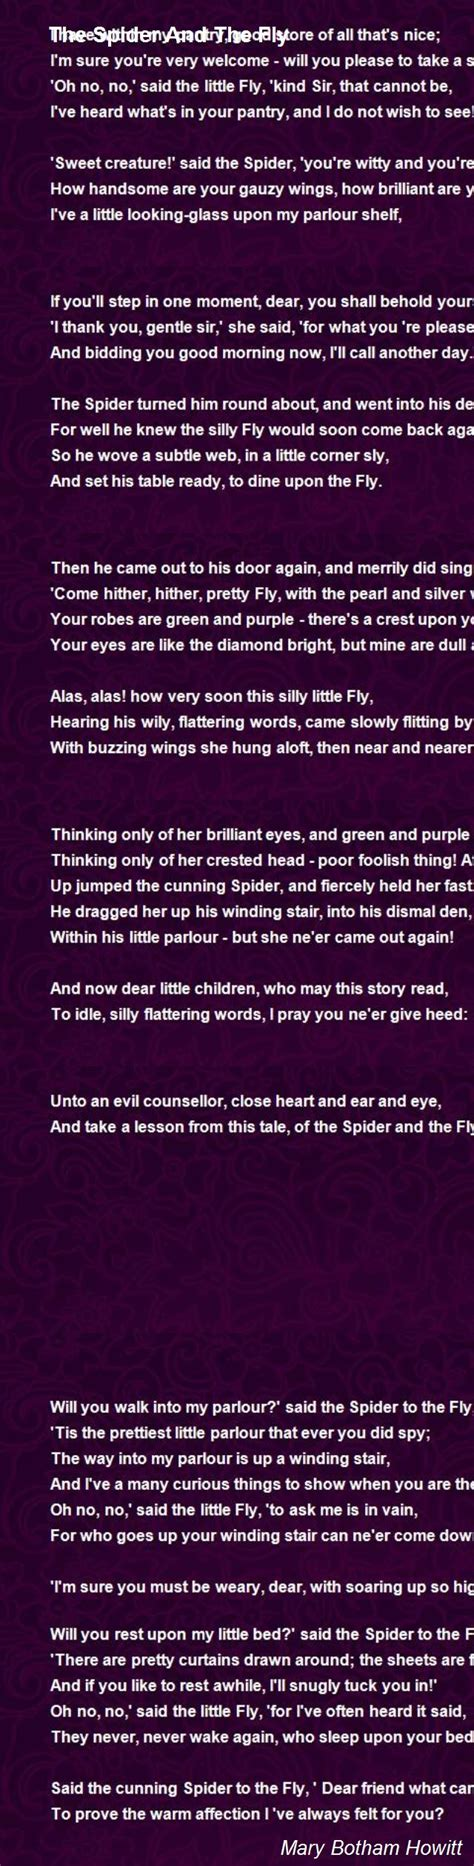 the spider and the fly a writer a murderer and a story of obsession books the spider and the fly poem by botham howitt poem comments